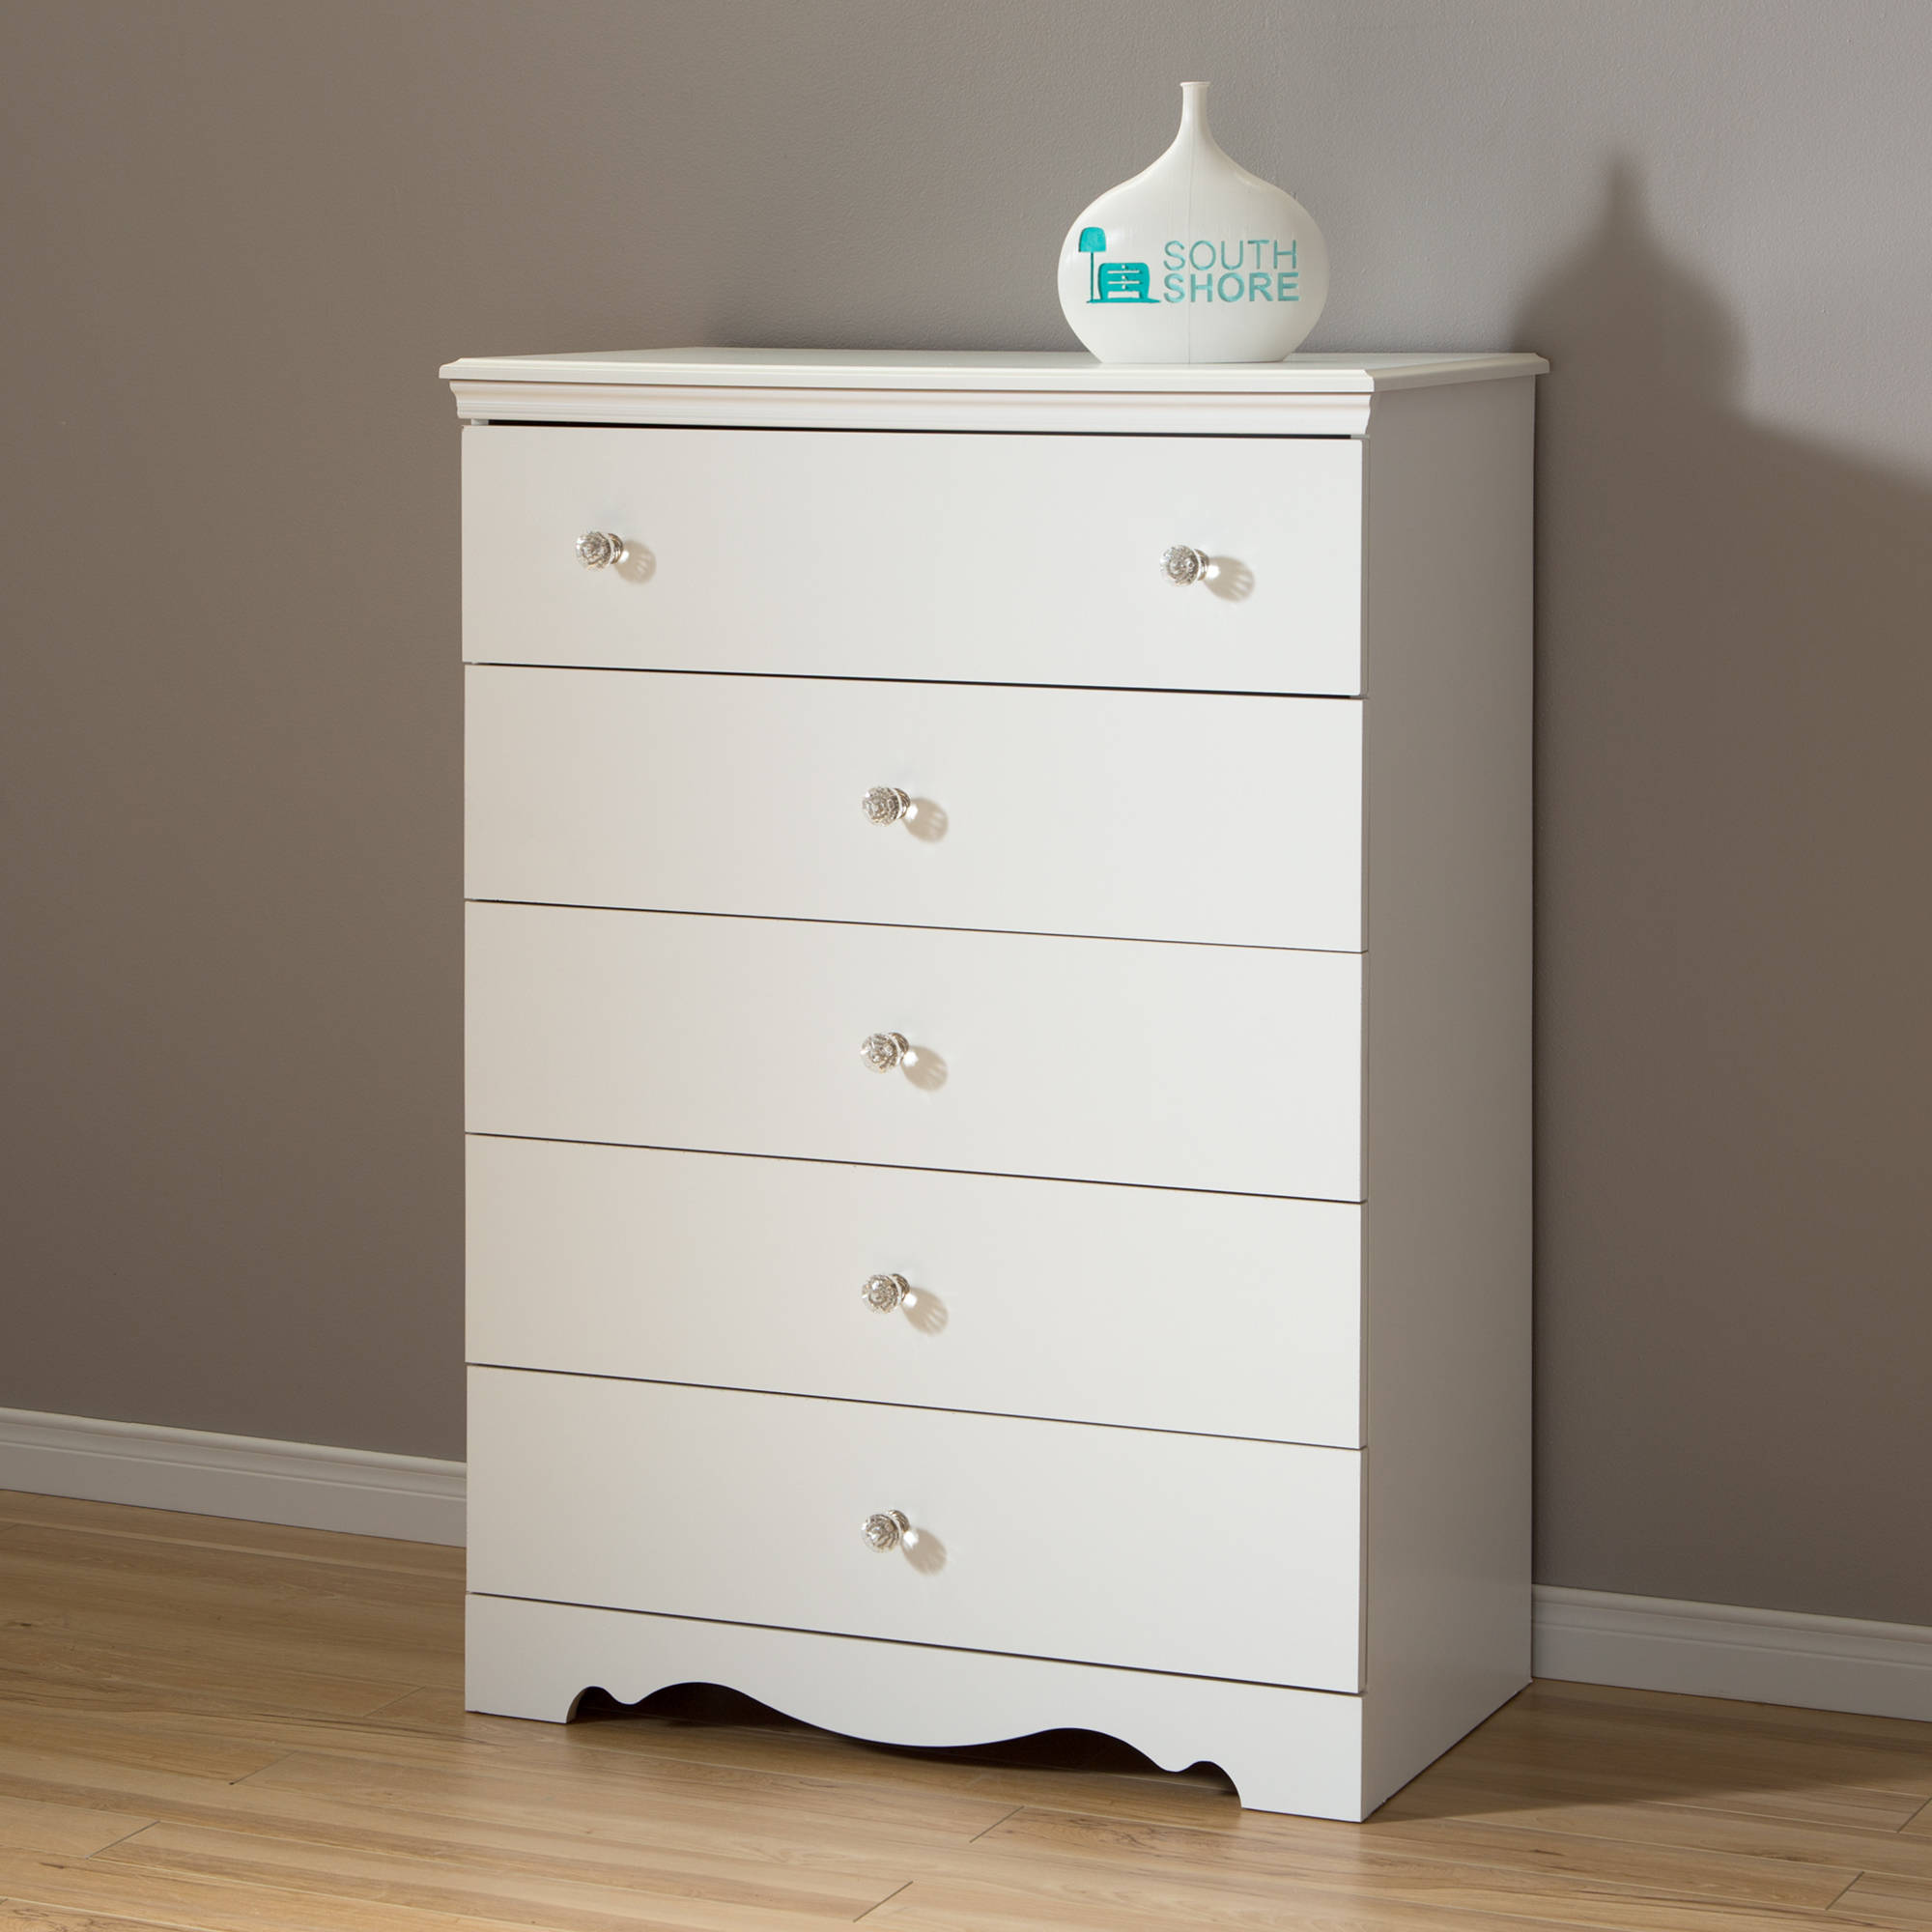 South Shore Crystal 5-Drawer Chest, White